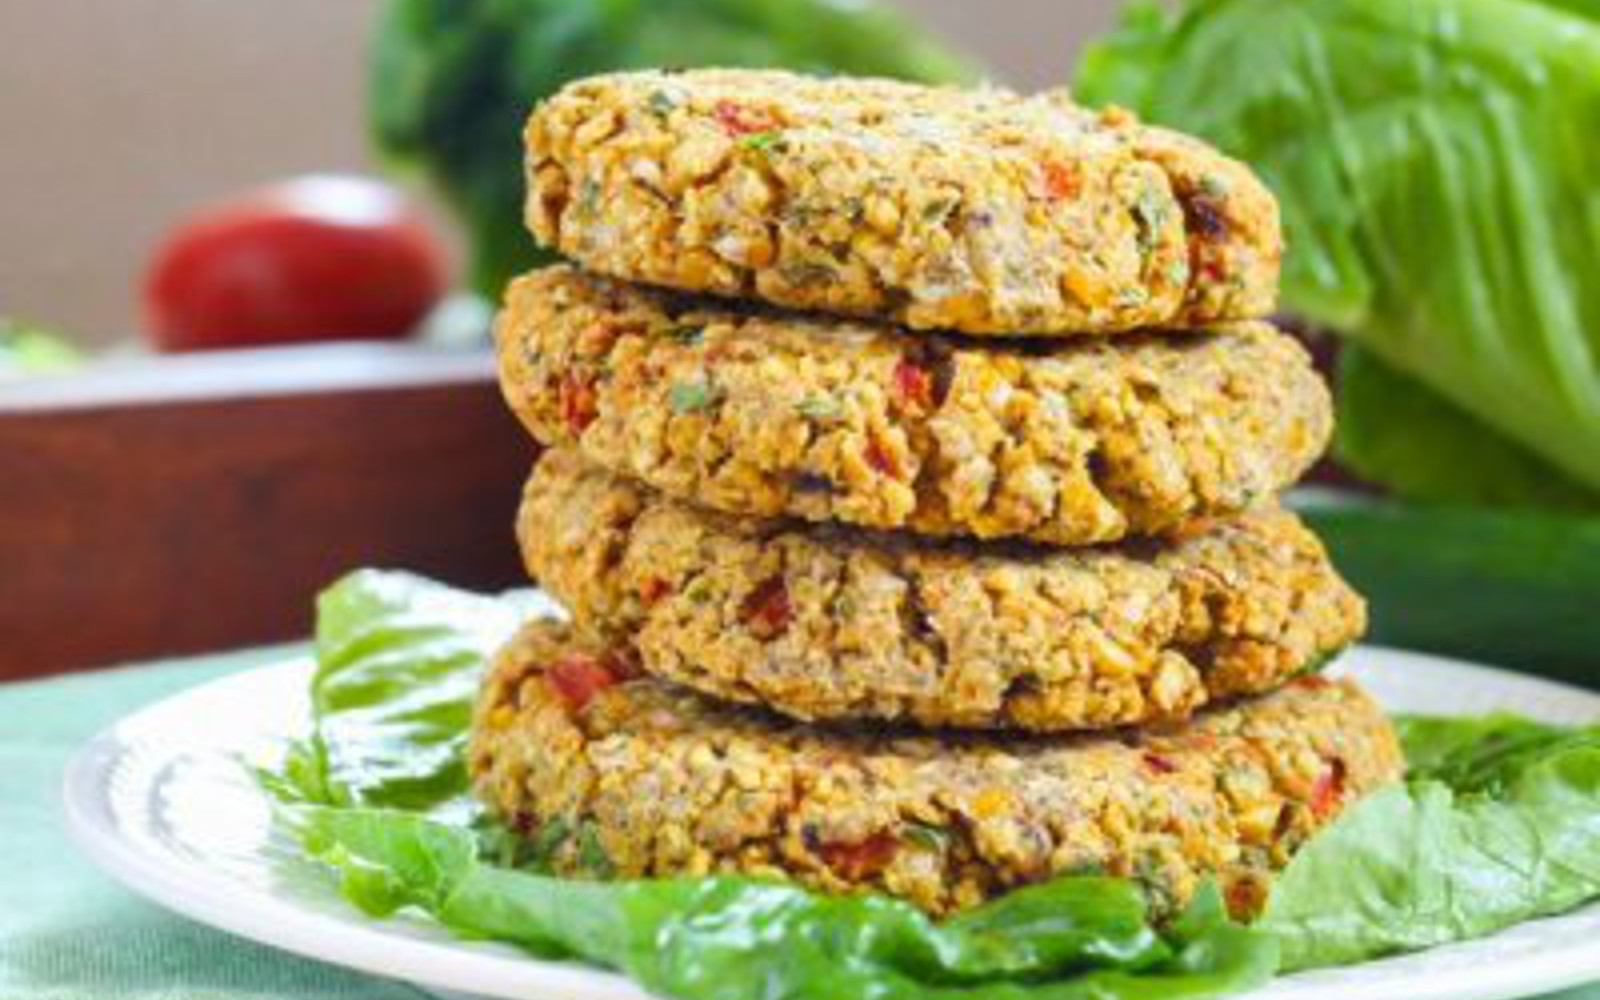 Roasted Red Pepper Chickpea Burger